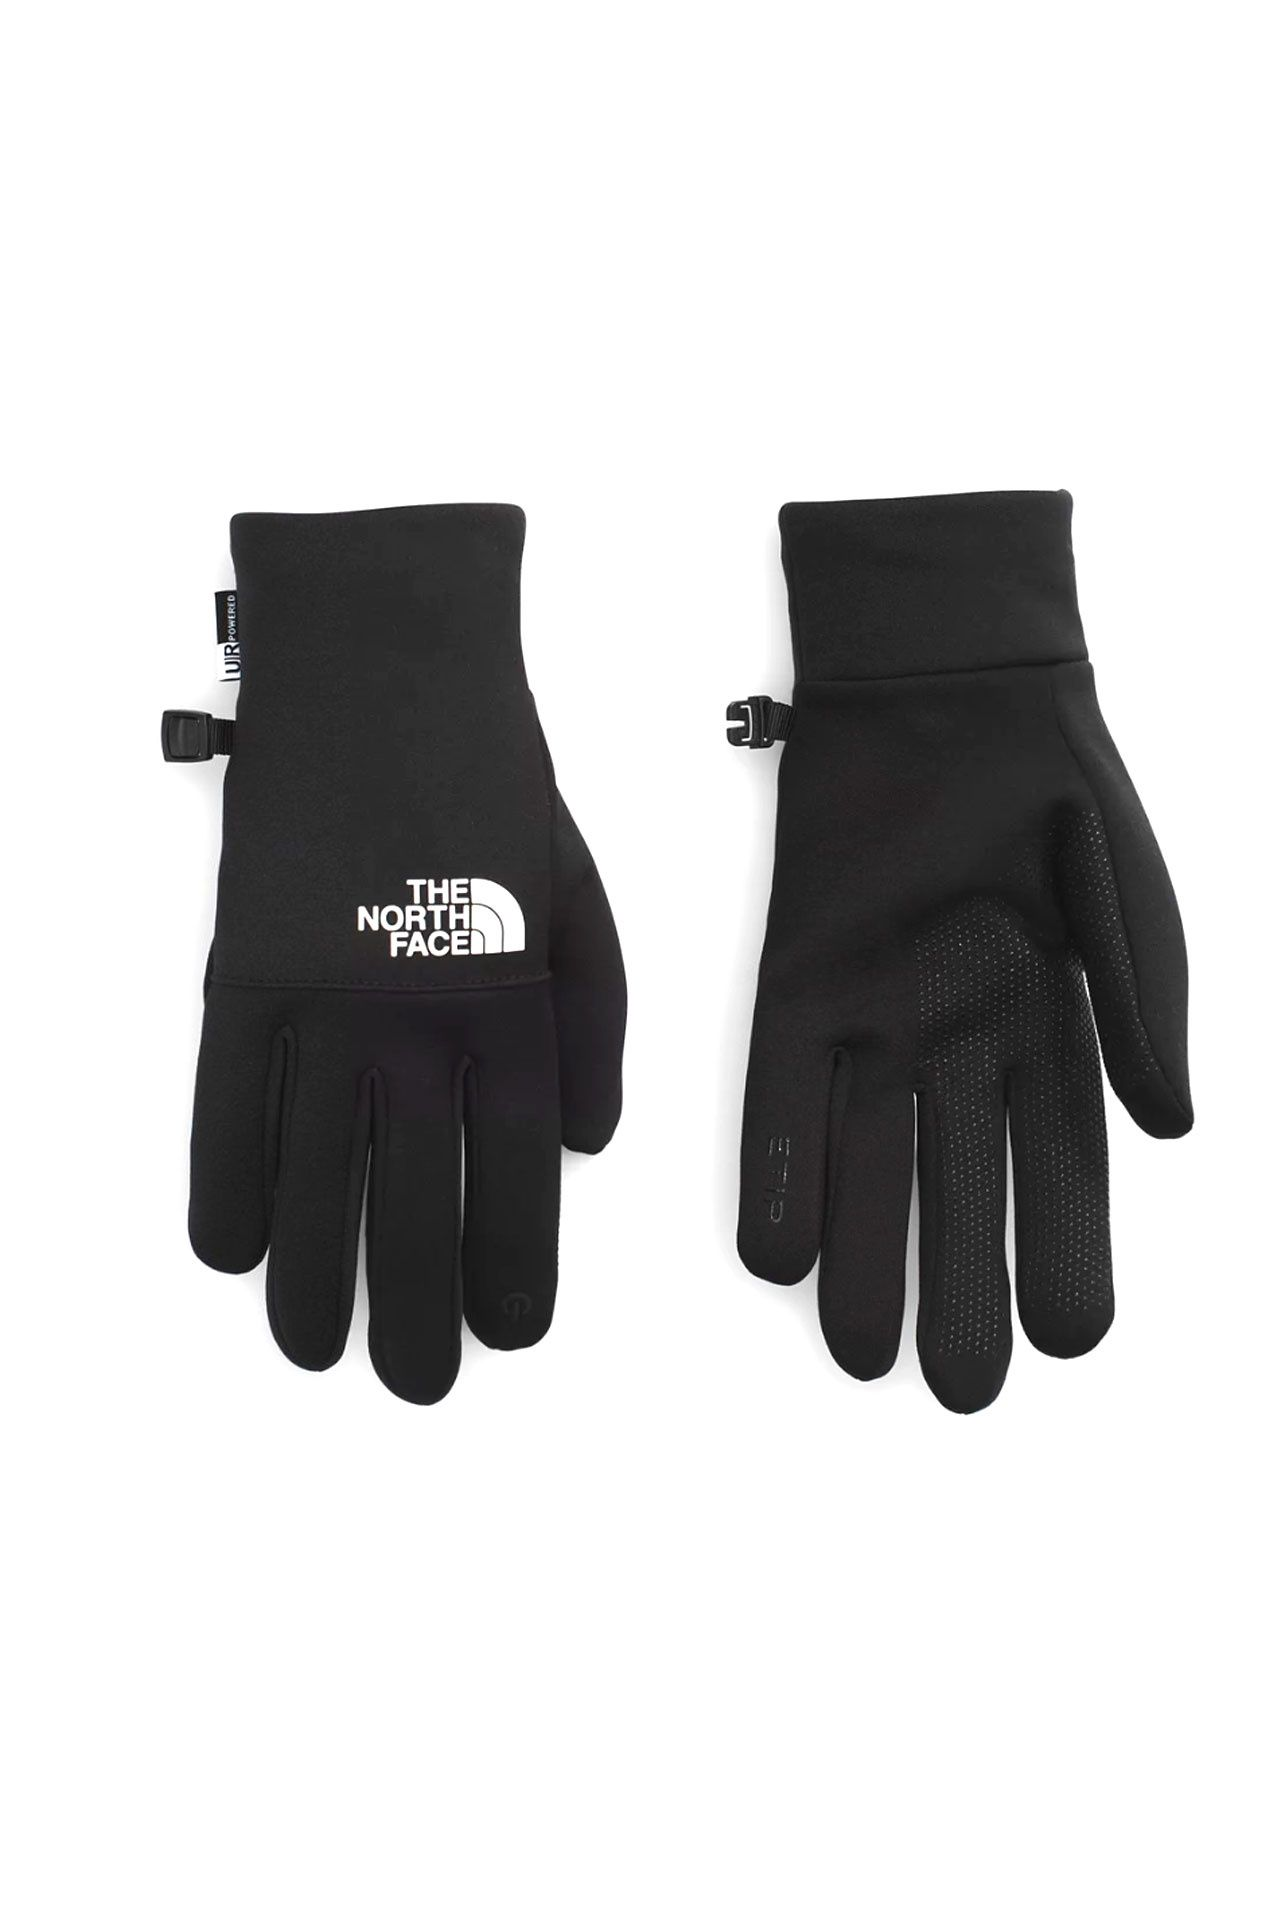 Afbeelding van The North Face Handschoenen Etip Recycled Glove TNF Black / TNf White NF0A4SHAKY41